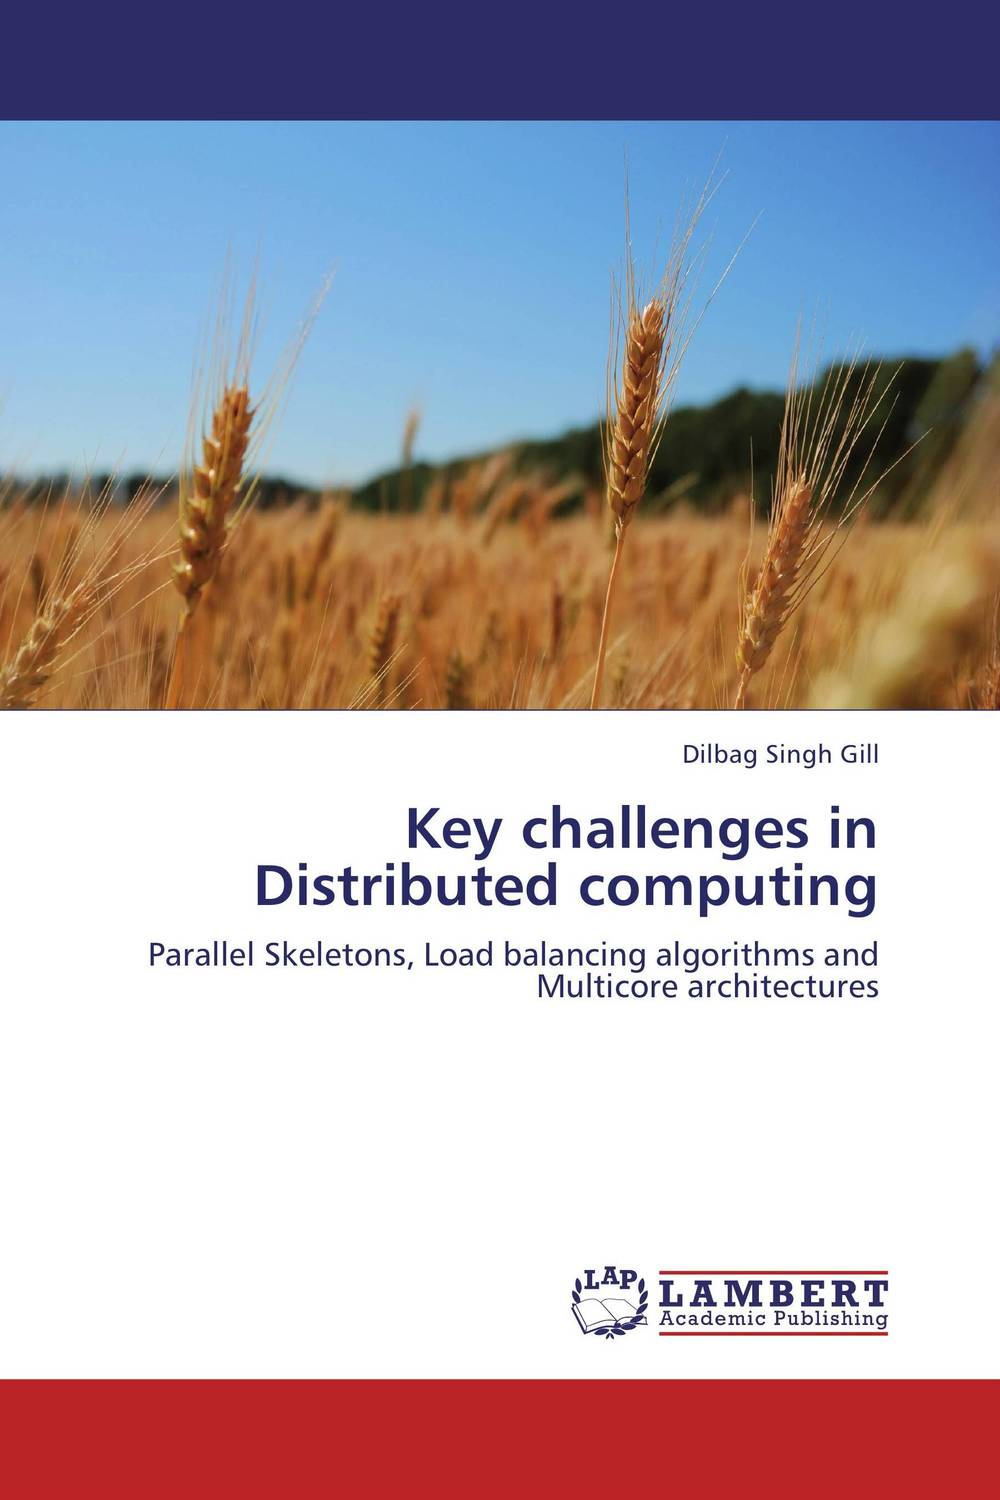 Key challenges in Distributed computing parallel algorithms for free and associative commutative unification